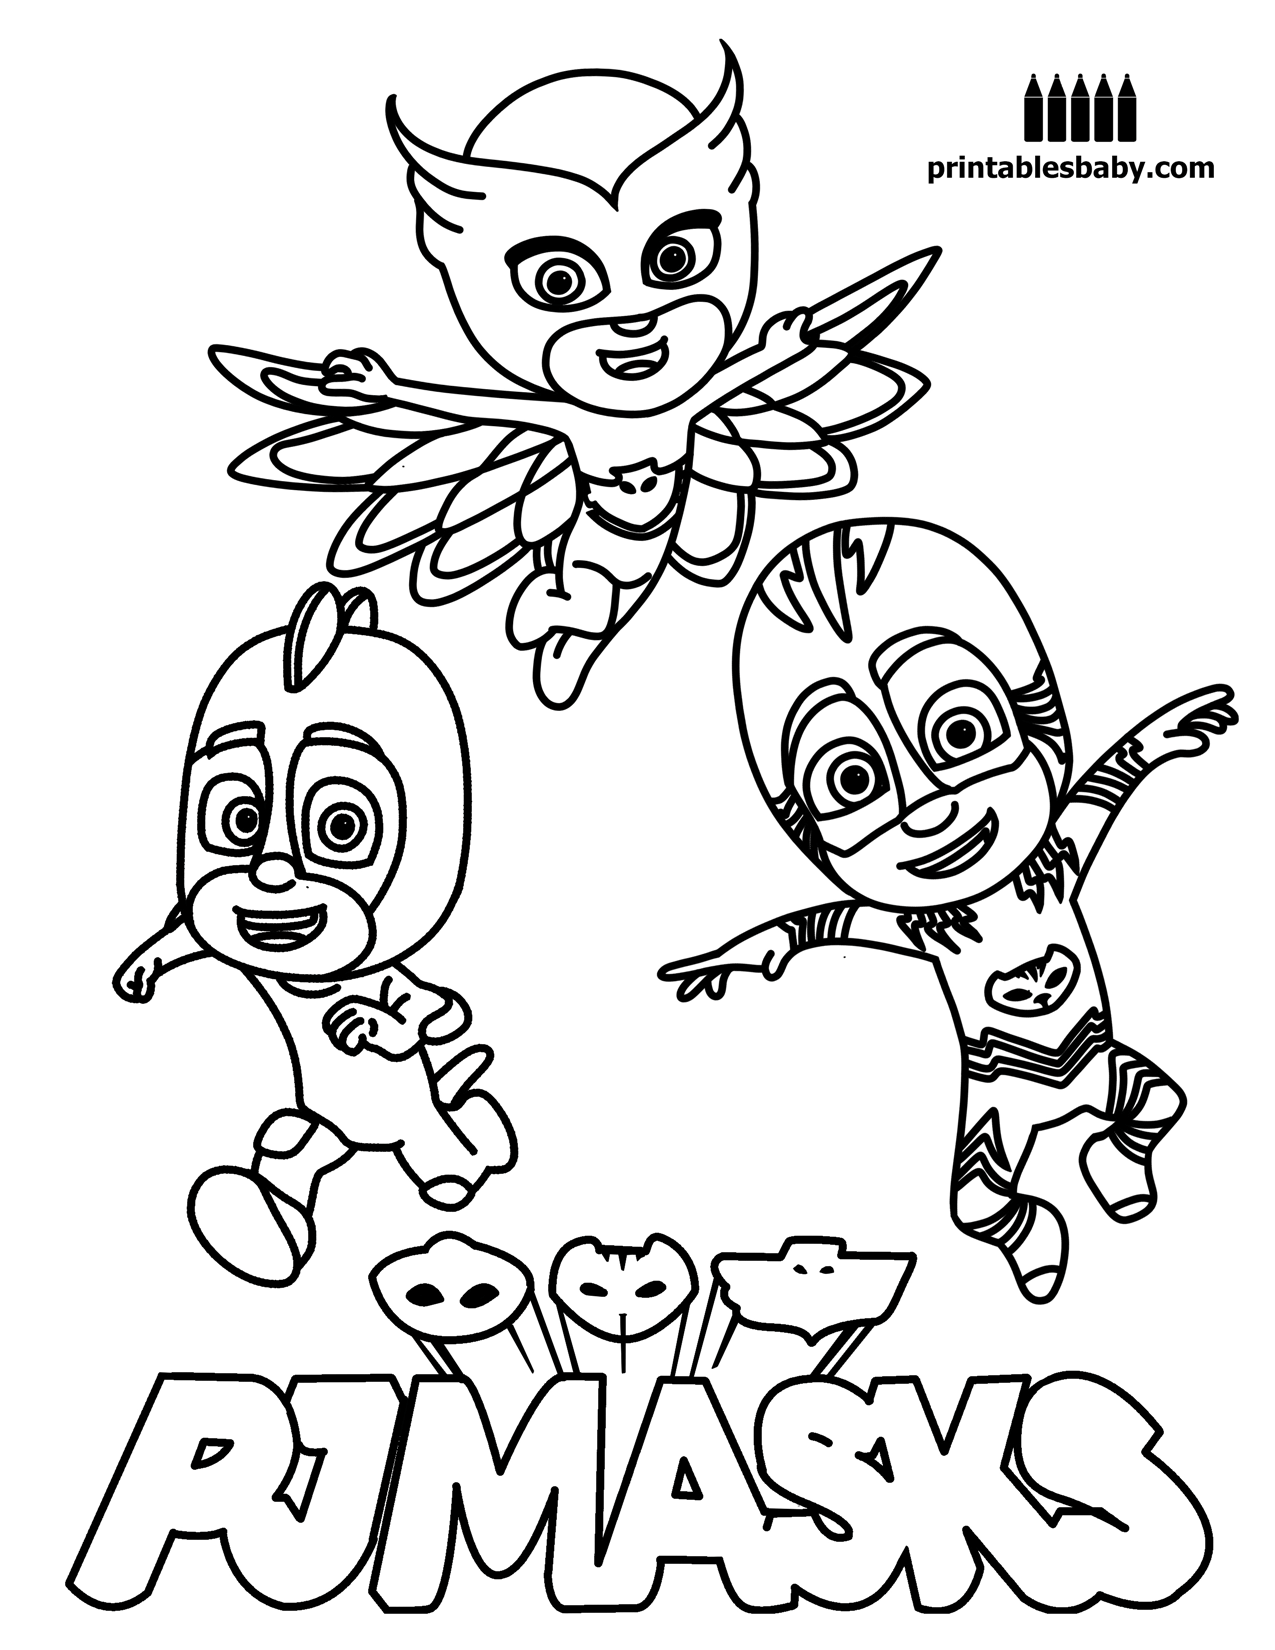 Disney pj masks coloring sheets - Pj Masks Printables Baby Free Cartoon Coloring Pages